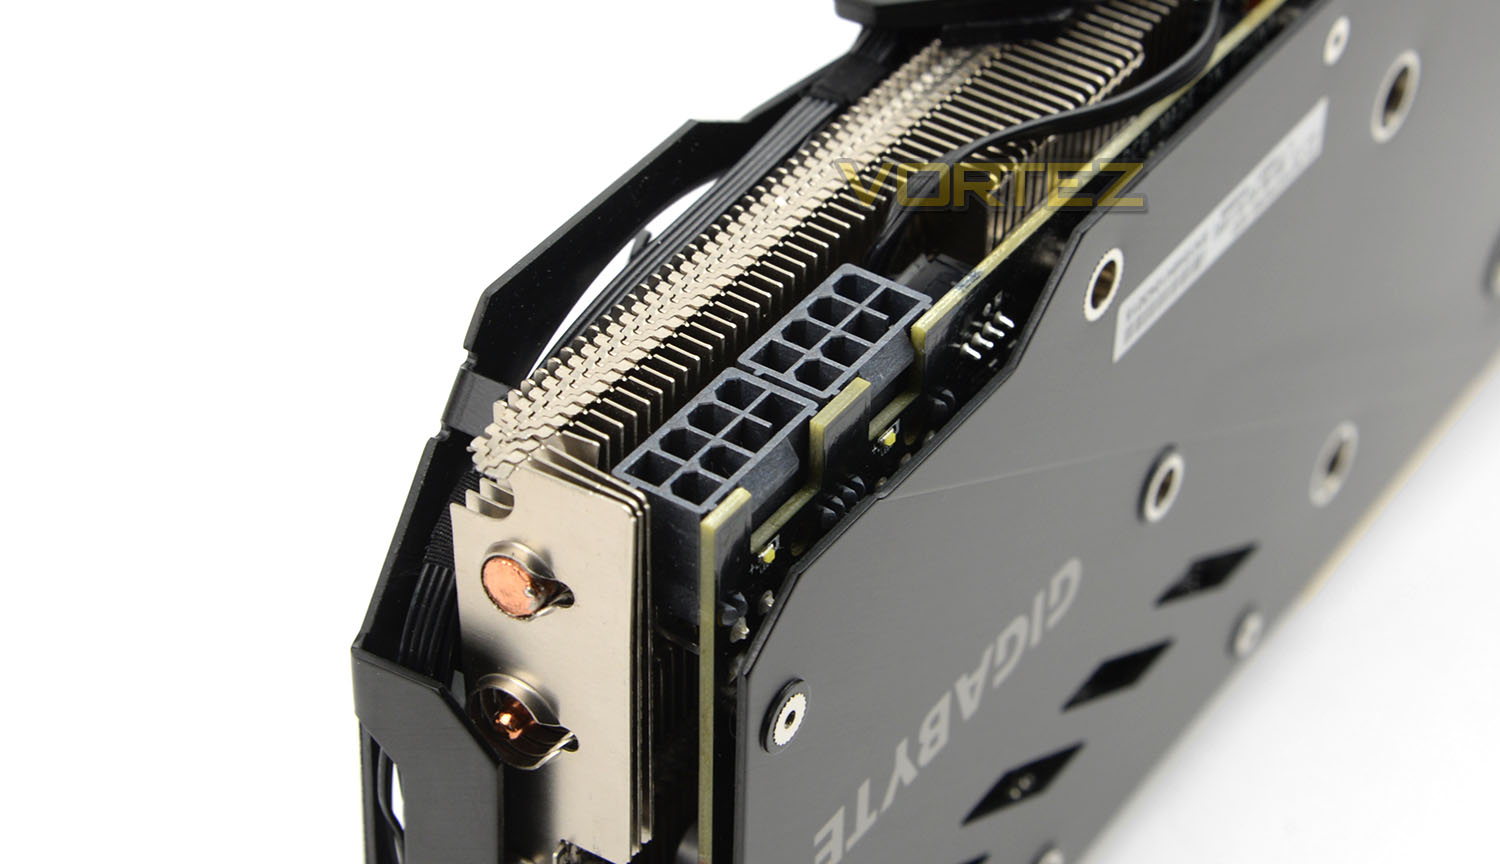 Gigabyte Gtx 970 Xtreme Gaming Review Closer Look With Cooler